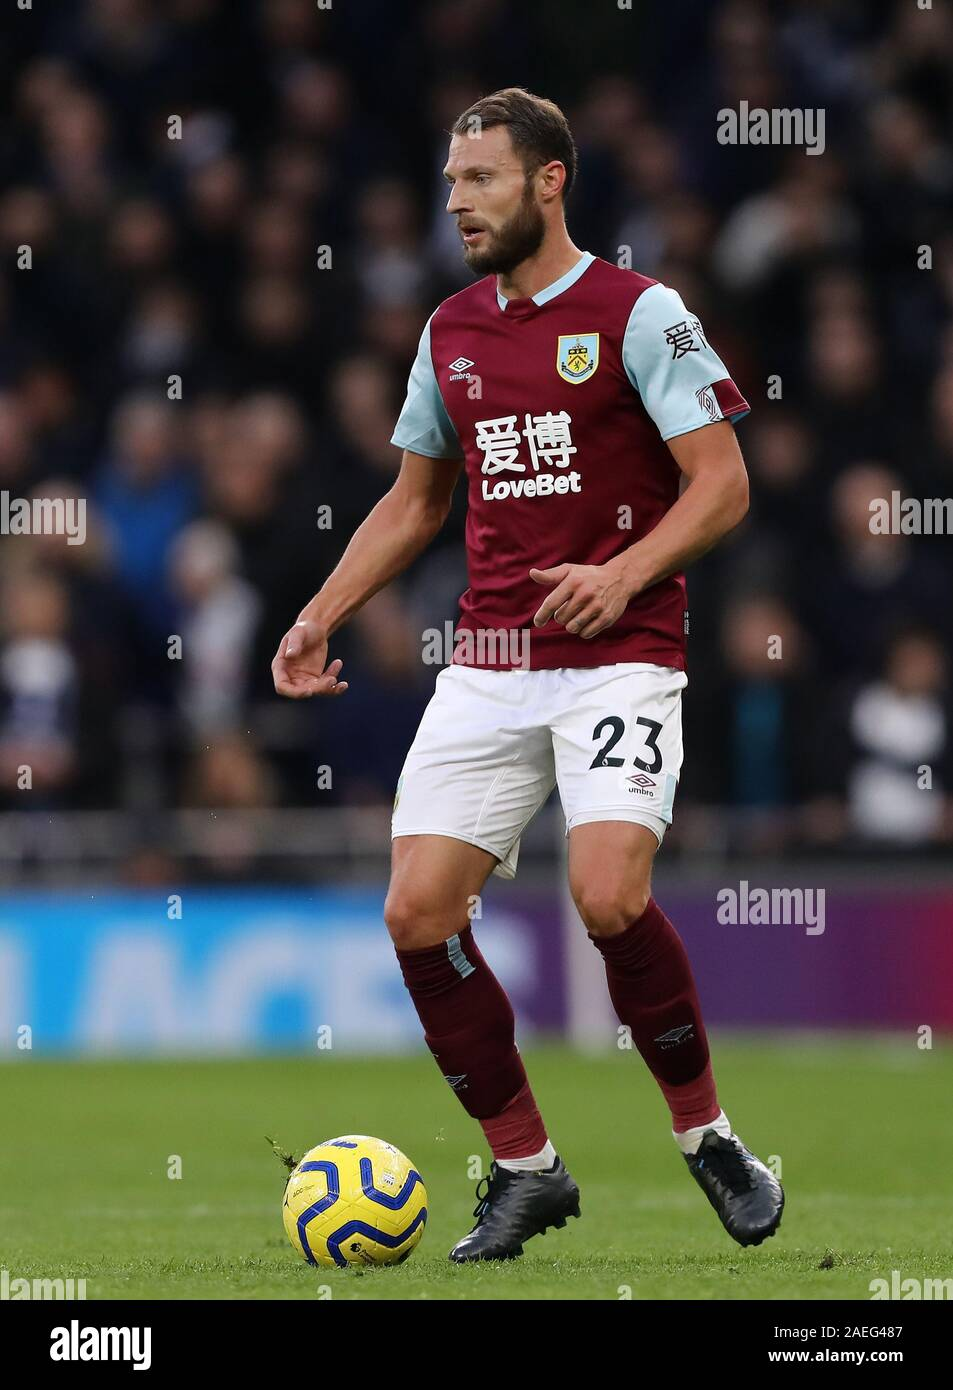 Erik Pieters of Burnley - Tottenham Hotspur v Burnley, Premier League, Tottenham Hotspur Stadium, London, UK - 7th December 2019  Editorial Use Only - DataCo restrictions apply Stock Photo